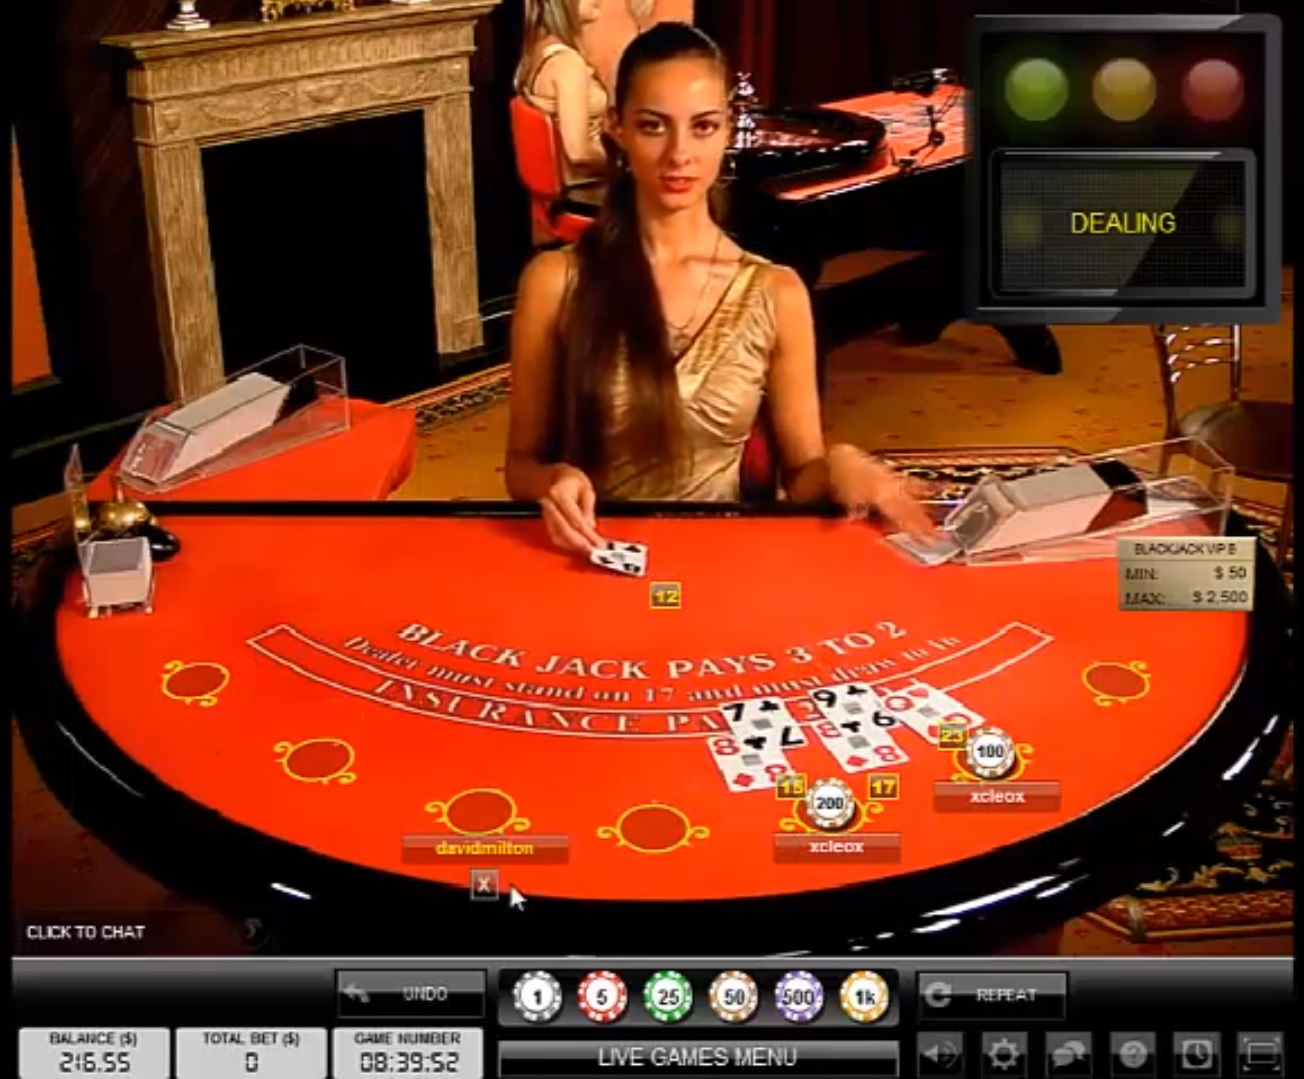 Live Dealer Casinos - Play Online Games at the Best Live Casinos